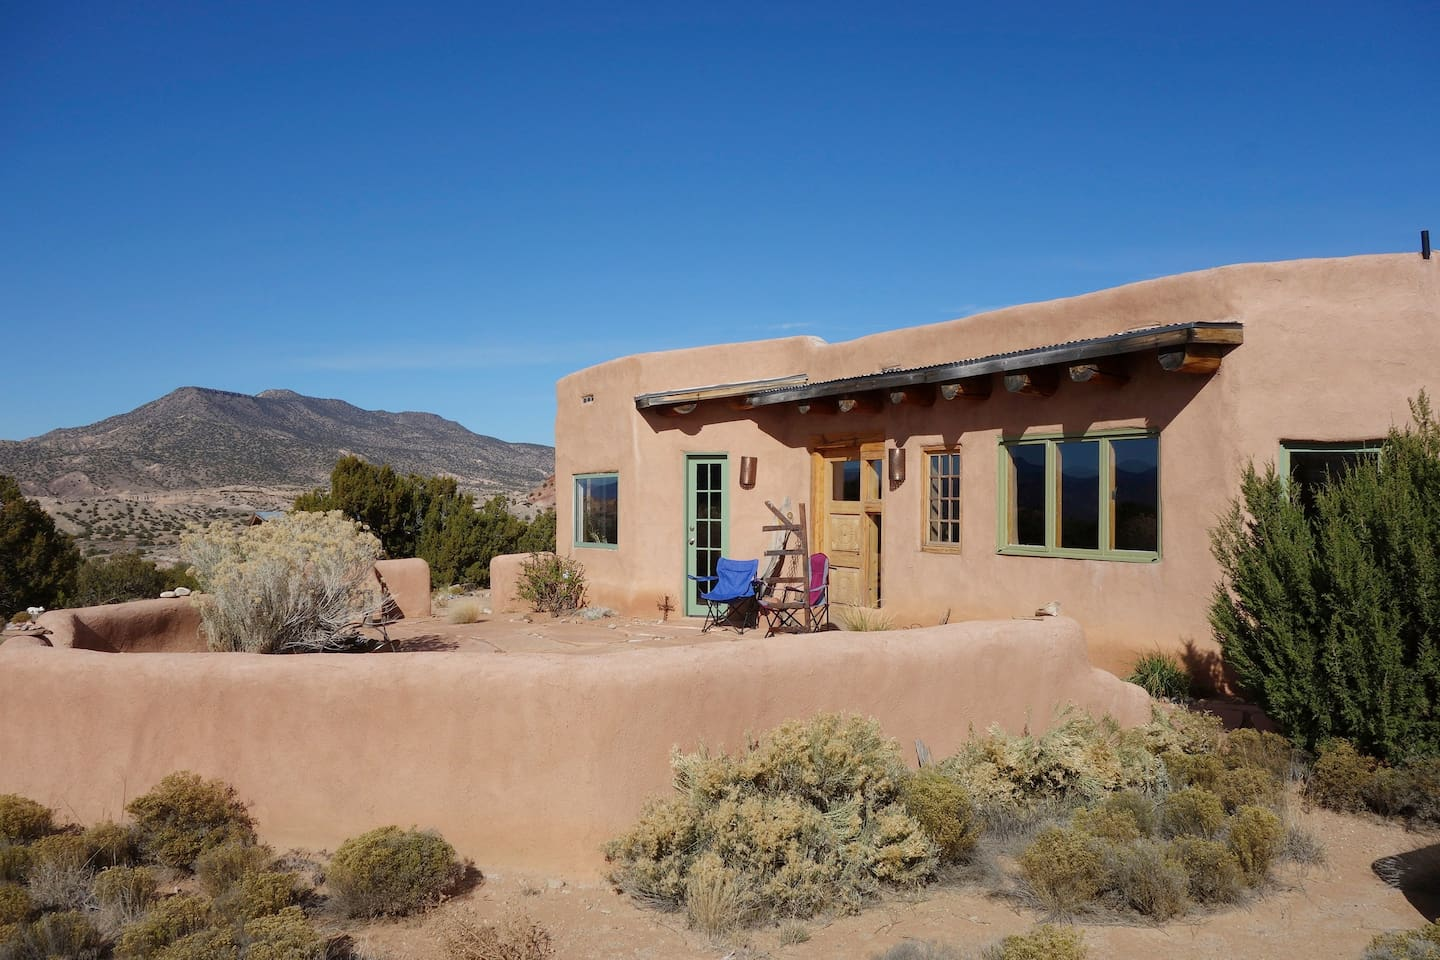 This is a sweet adobe home with plenty of outdoor space to enjoy the expansive views.